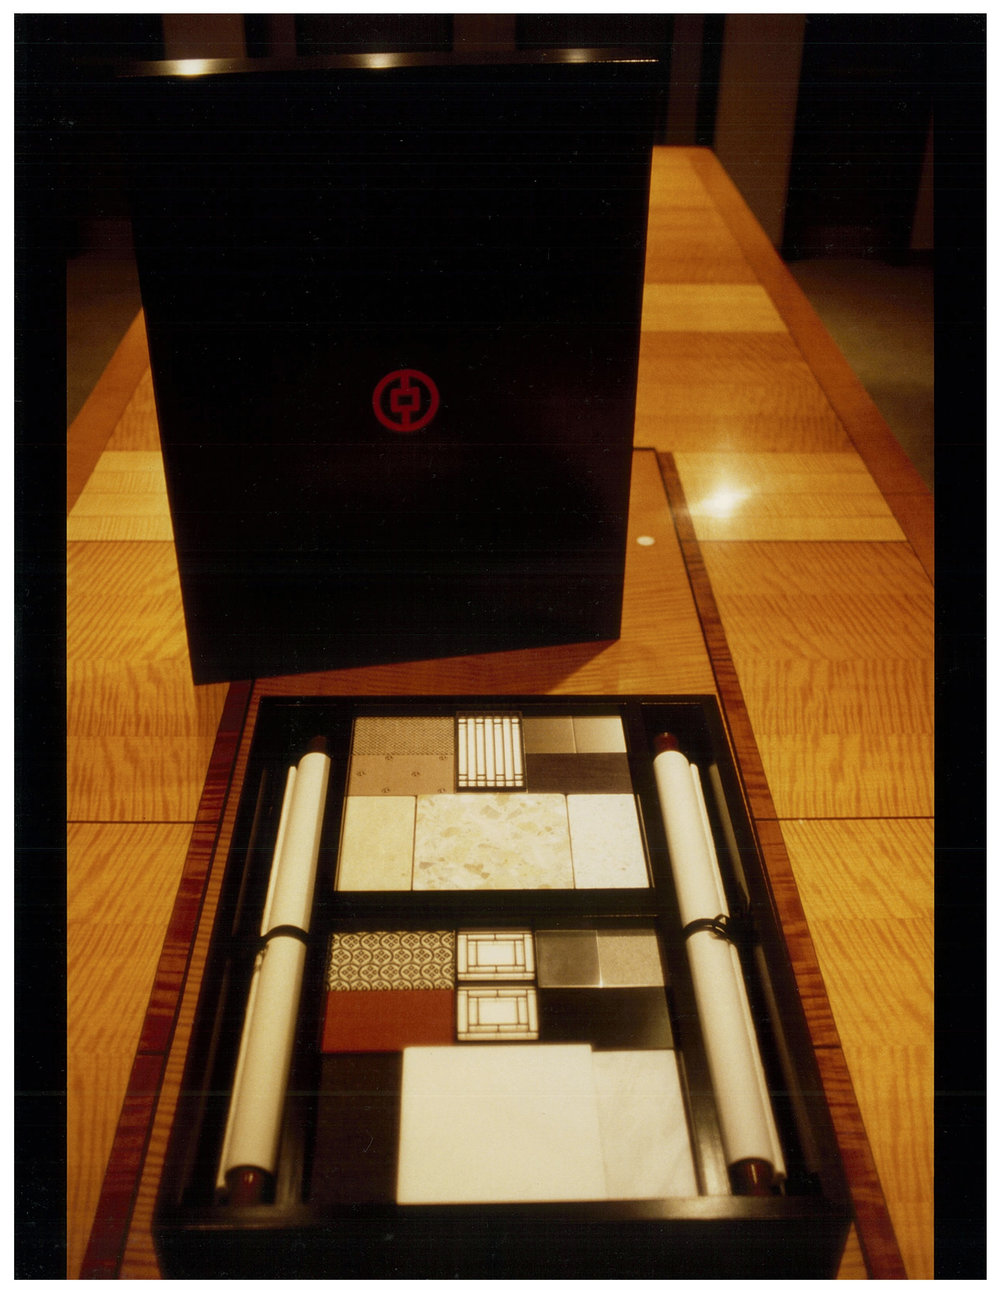 Bank of China-Materials box photo copy.jpg